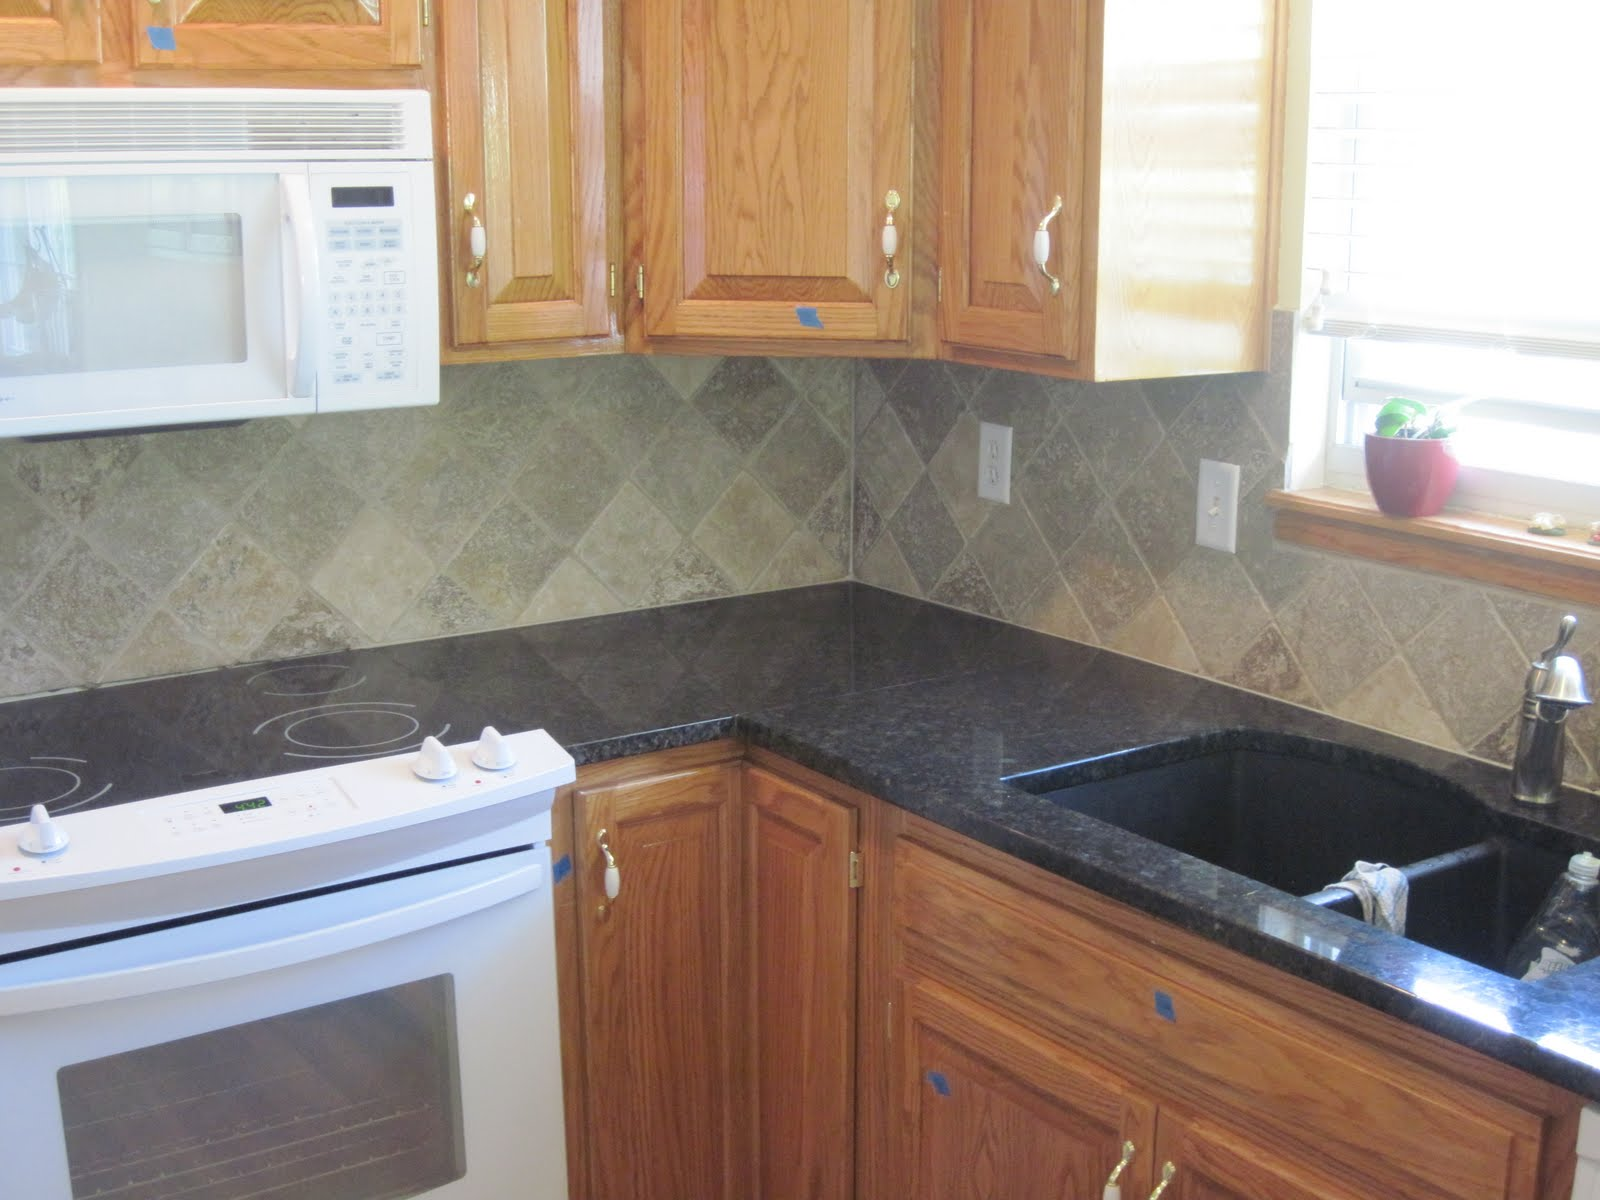 Drennon 39 s custom tile travertine backsplash in a diamond pattern Kitchen backsplash ideas pictures 2010